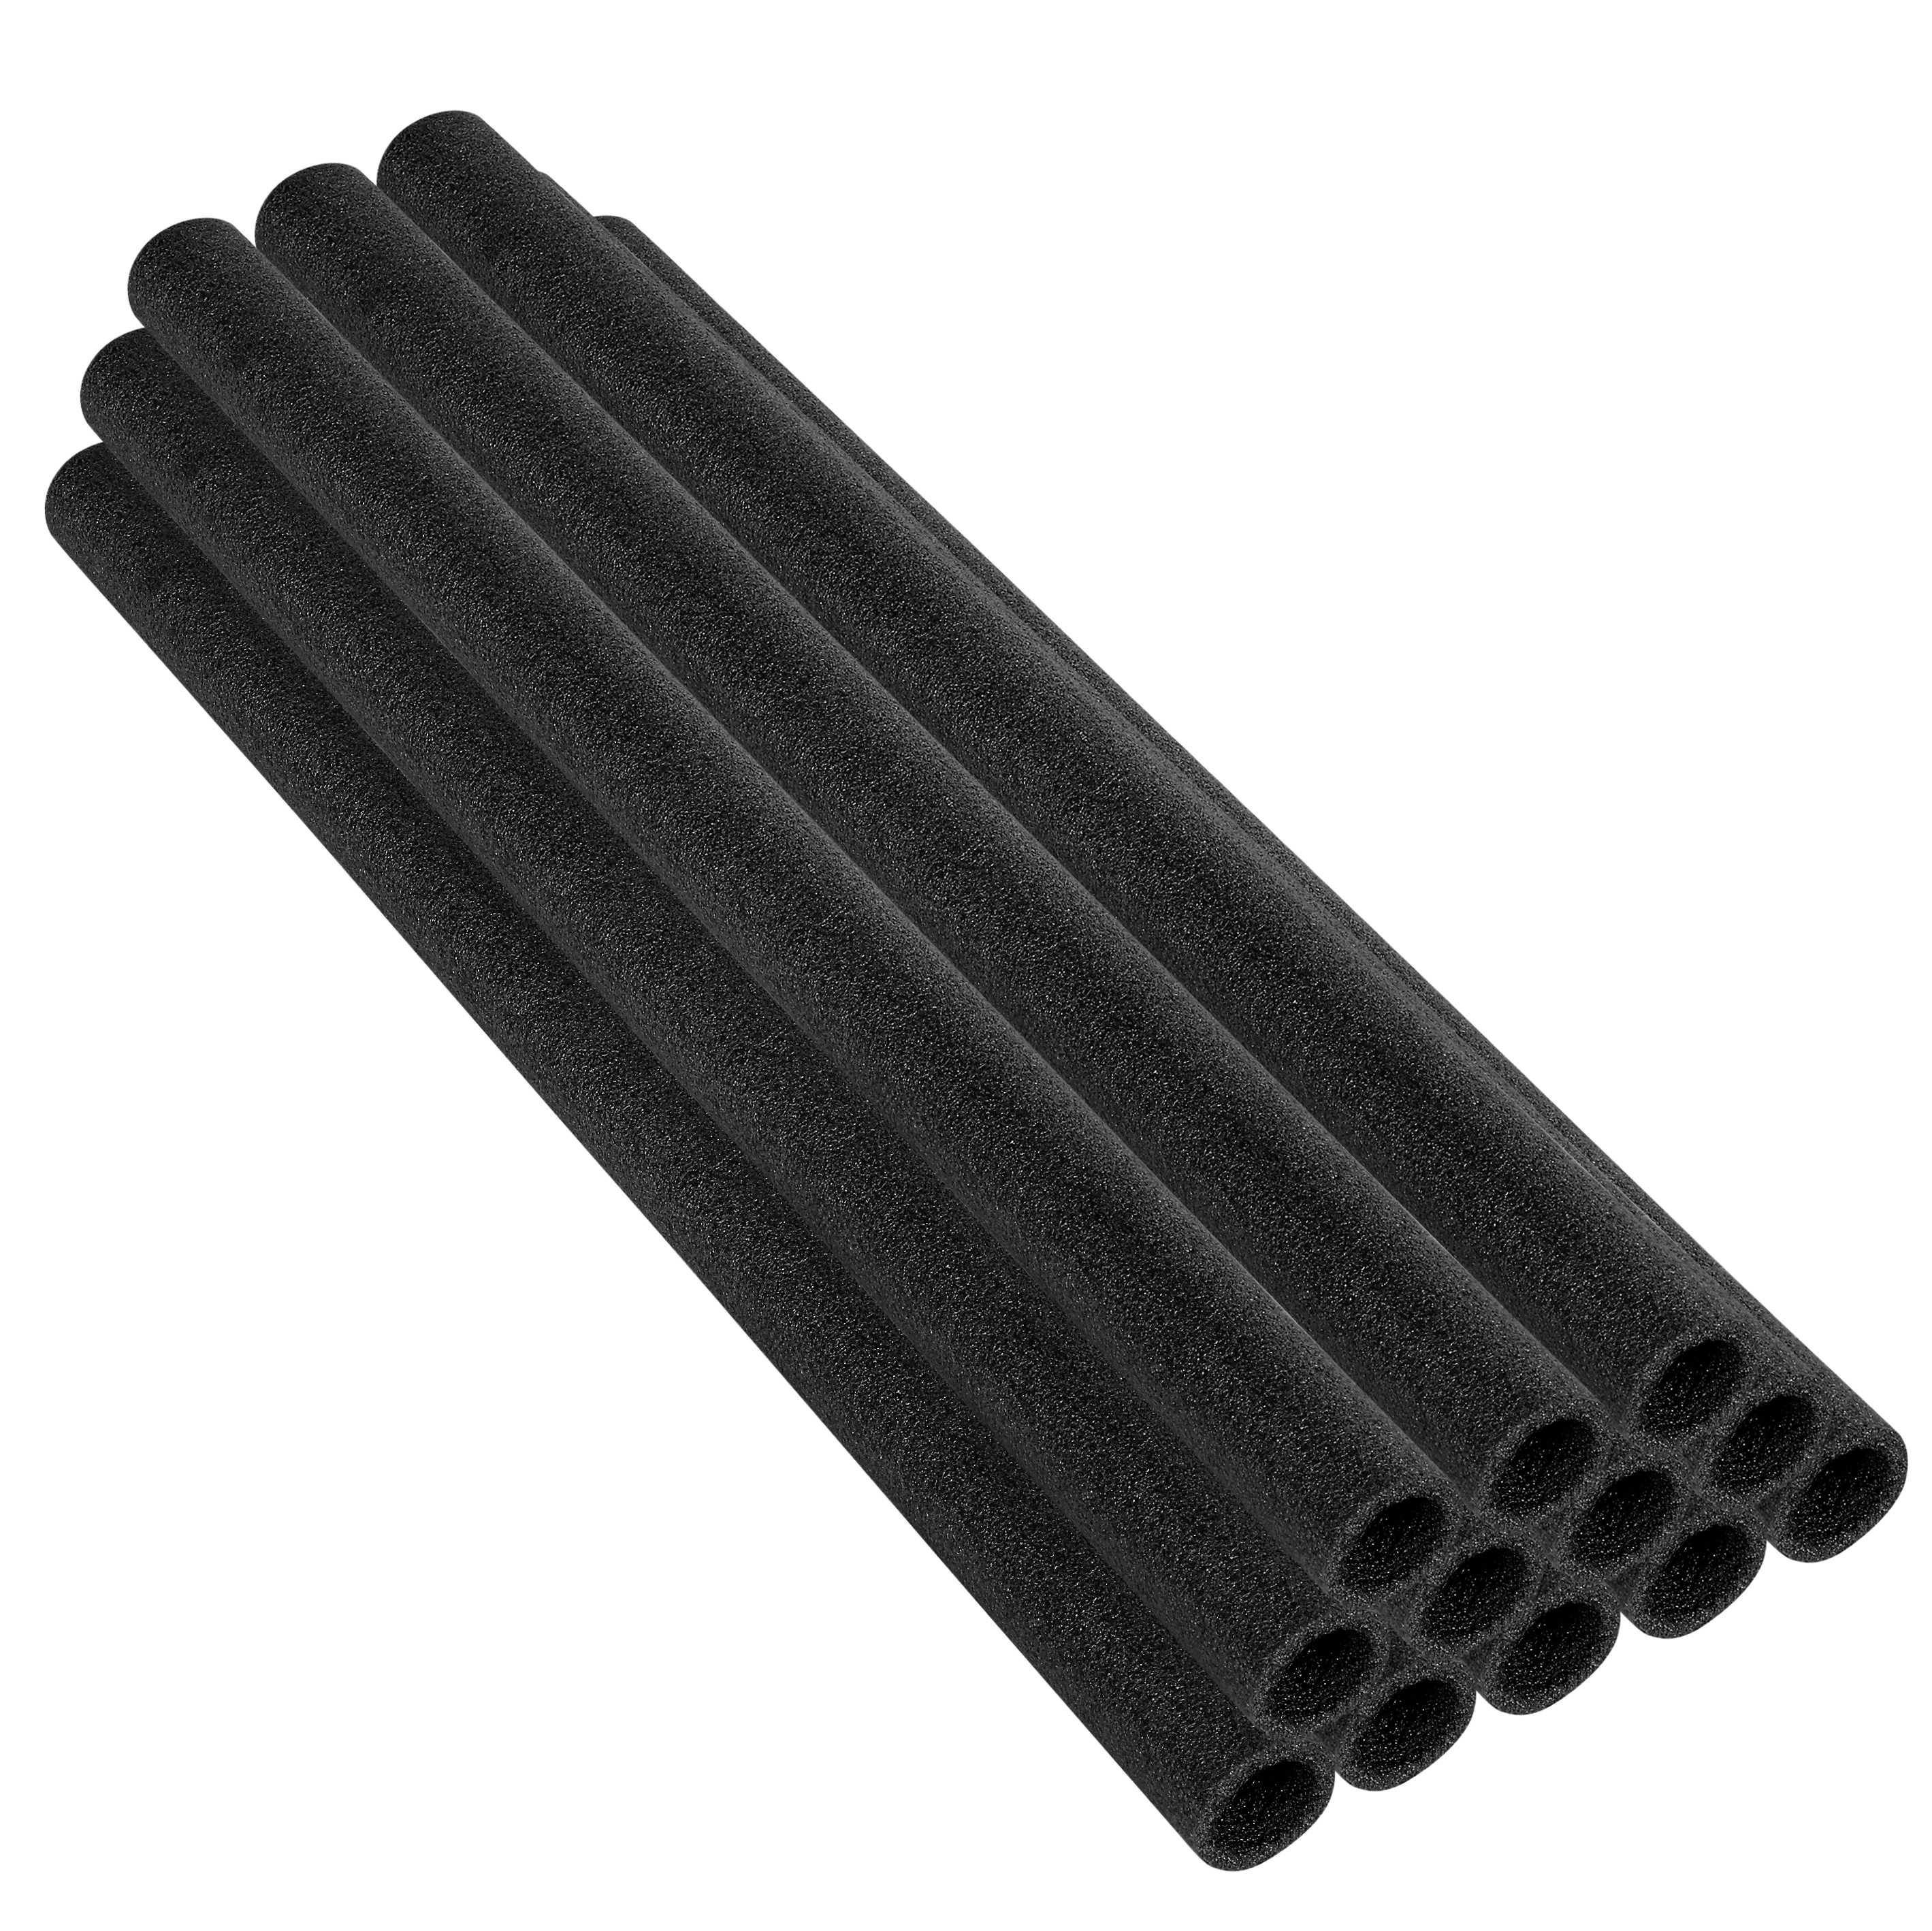 "Trampoline Pole Foam sleeves, fits for 1.5"" Diameter Pole - Set of 12"